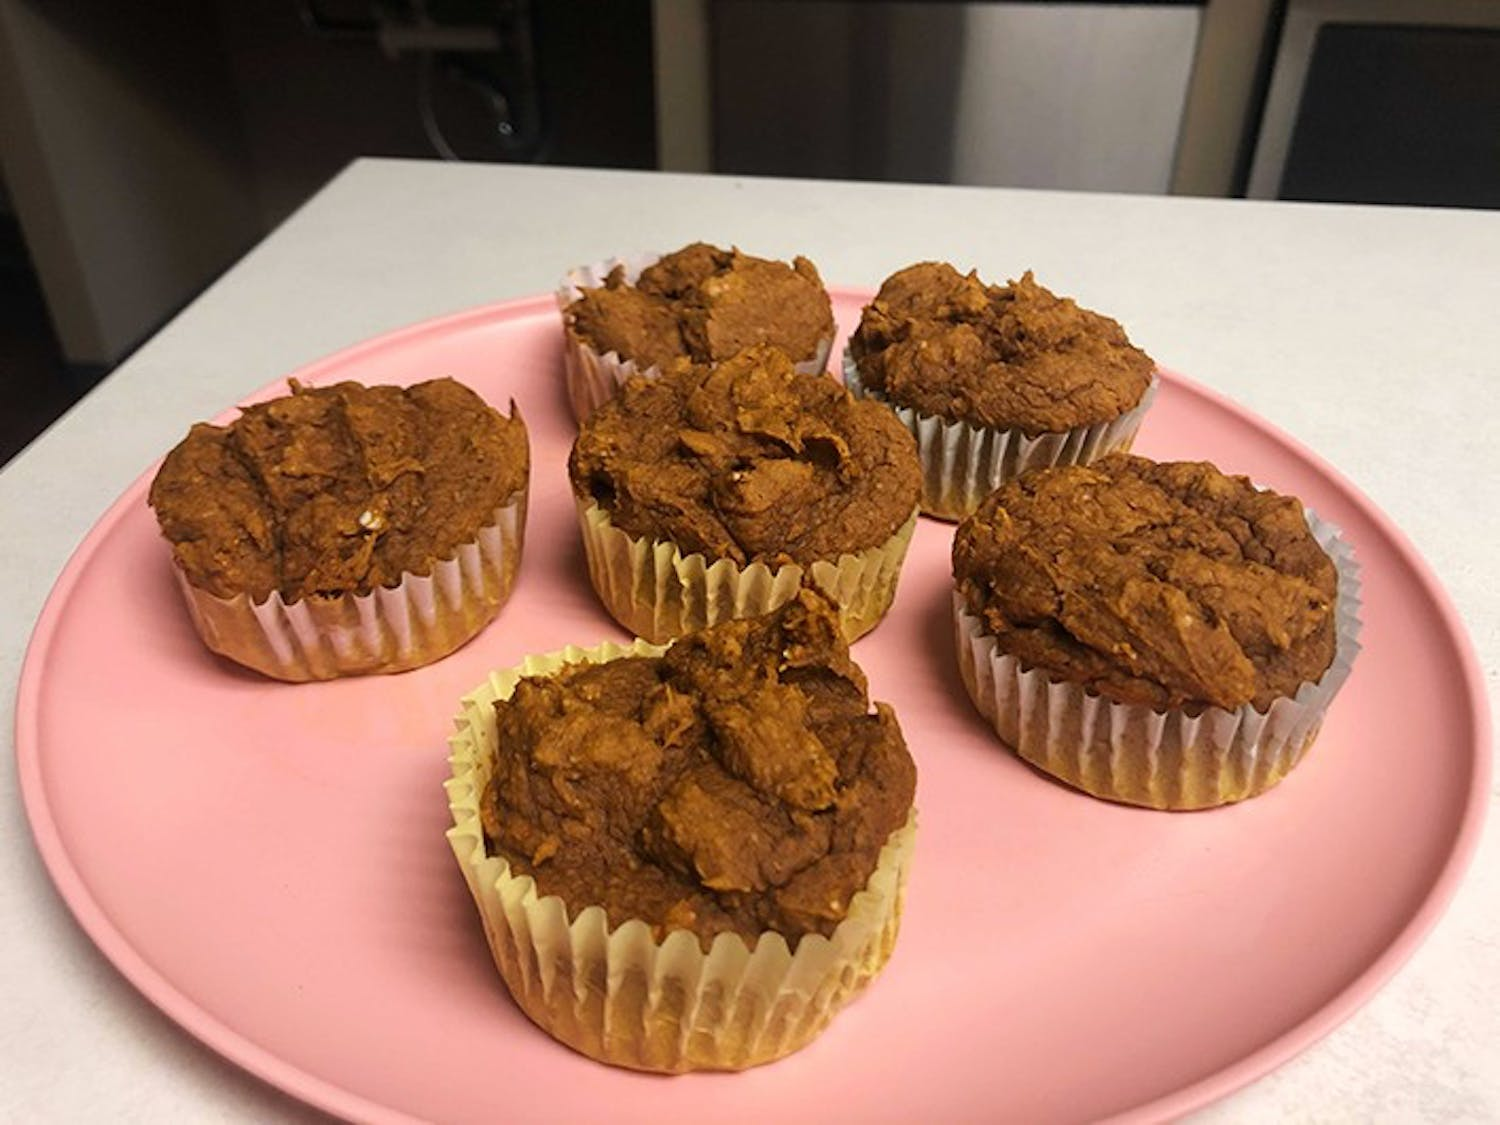 Pumpkin muffins sitting on a plate. The muffins are perfect for fall.